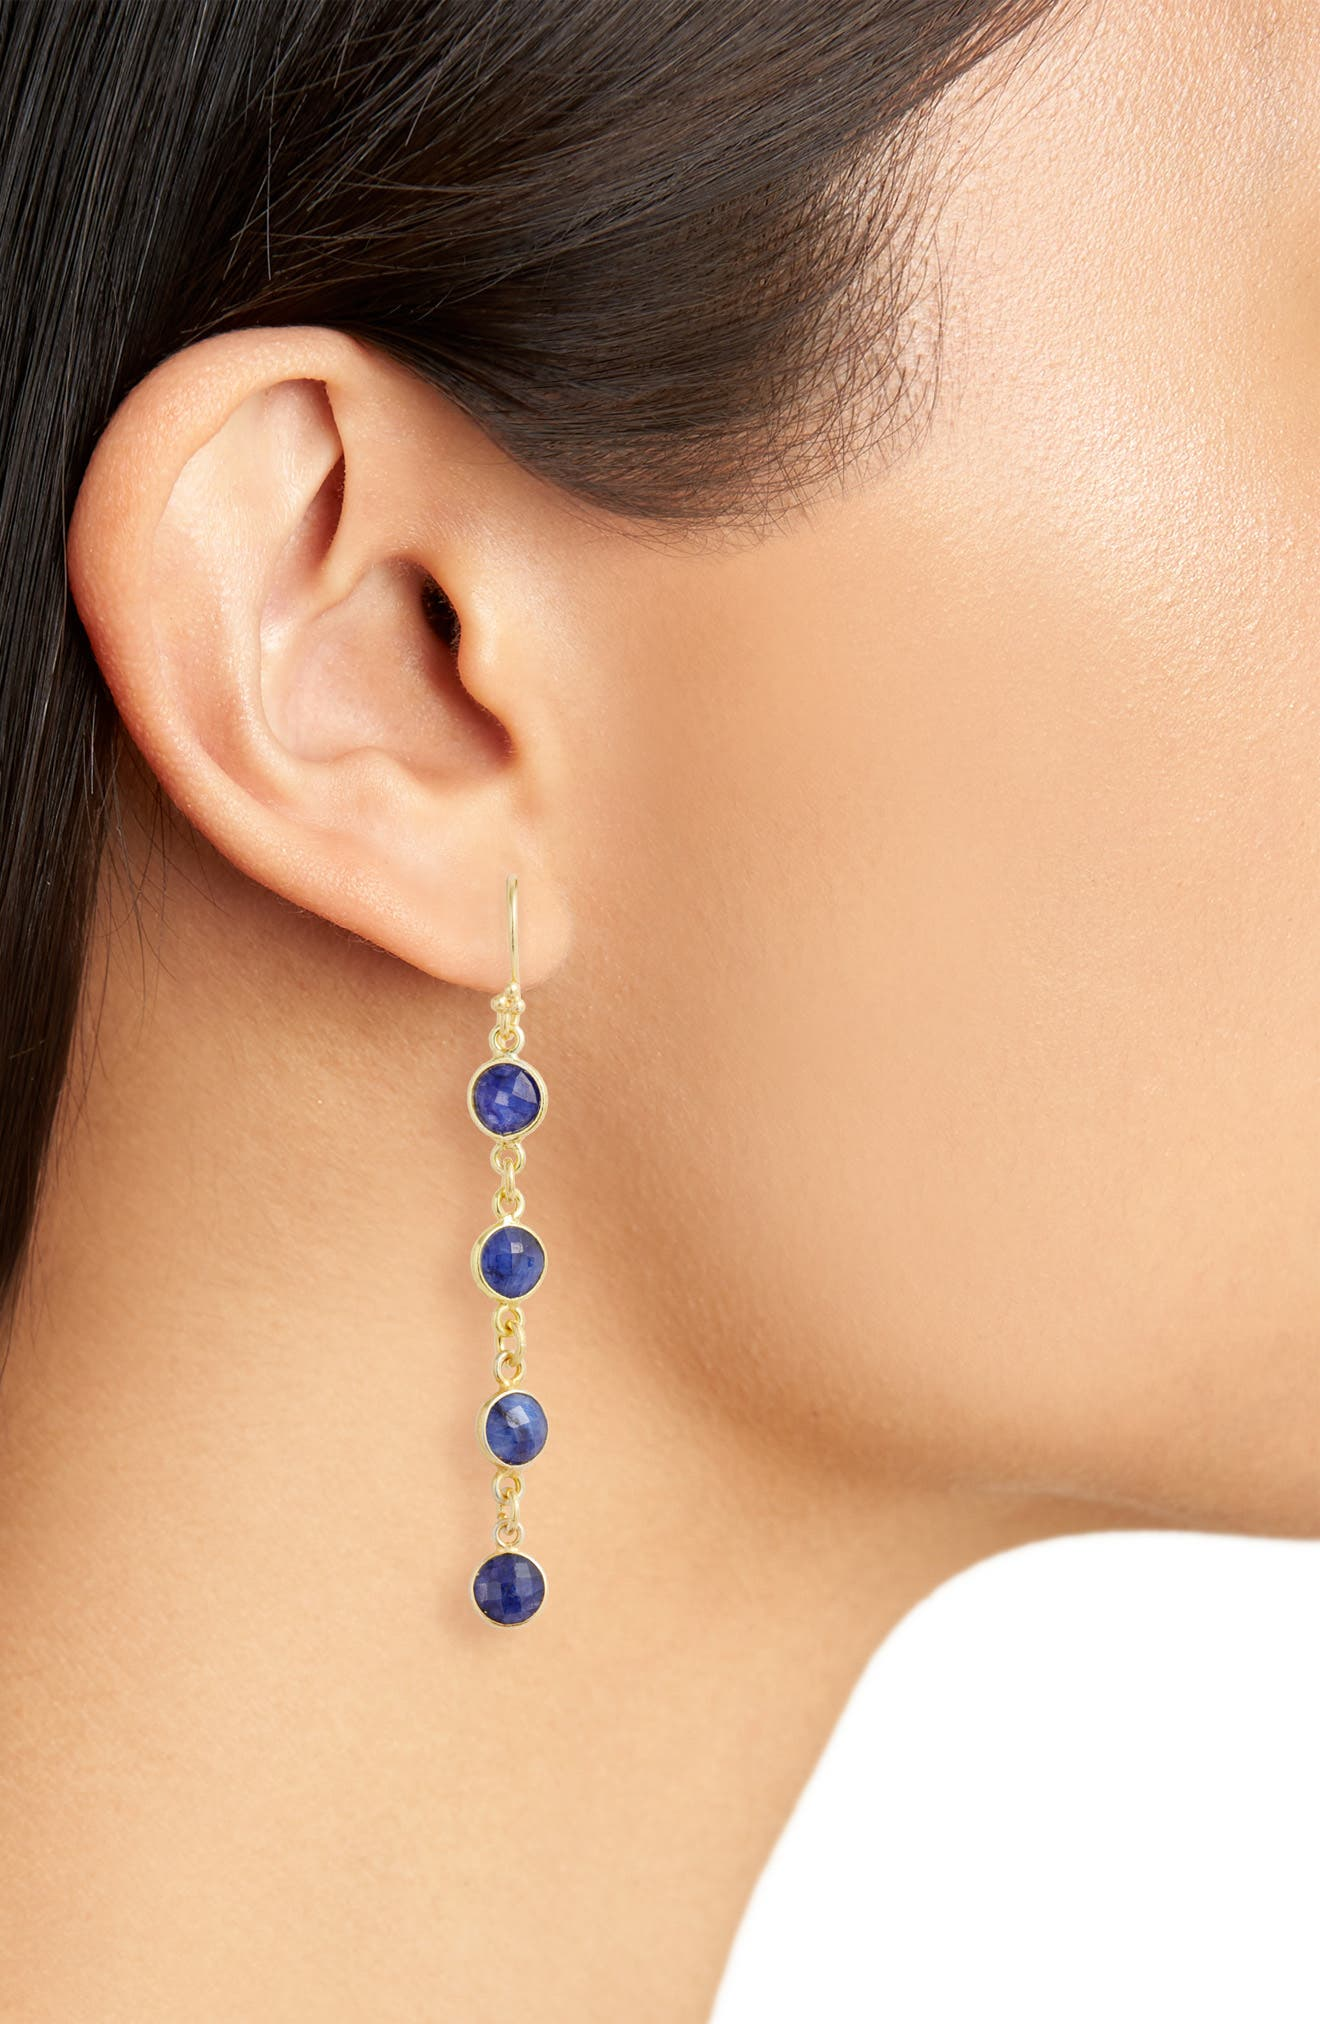 Stone Drop Earrings,                             Alternate thumbnail 2, color,                             405